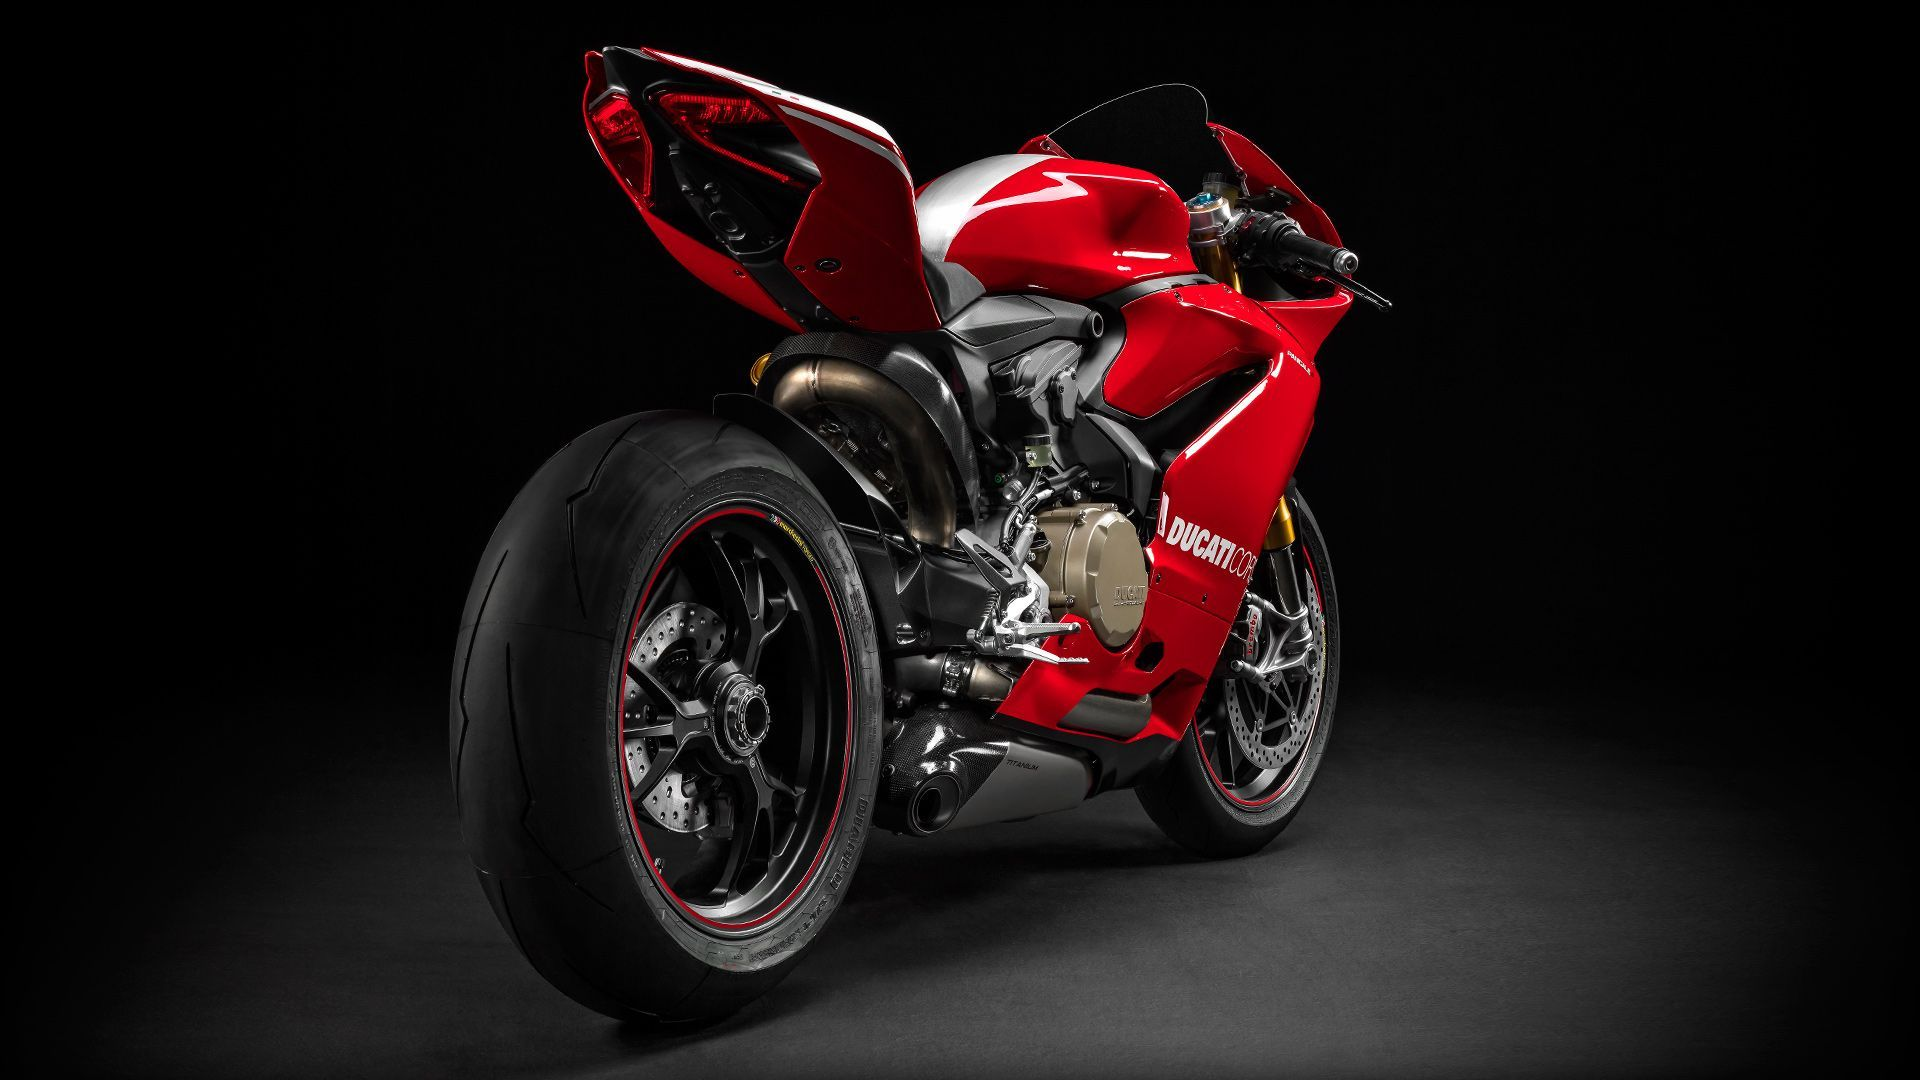 2015 Ducati Panigale R | Panigale R - Rear Angled Shot